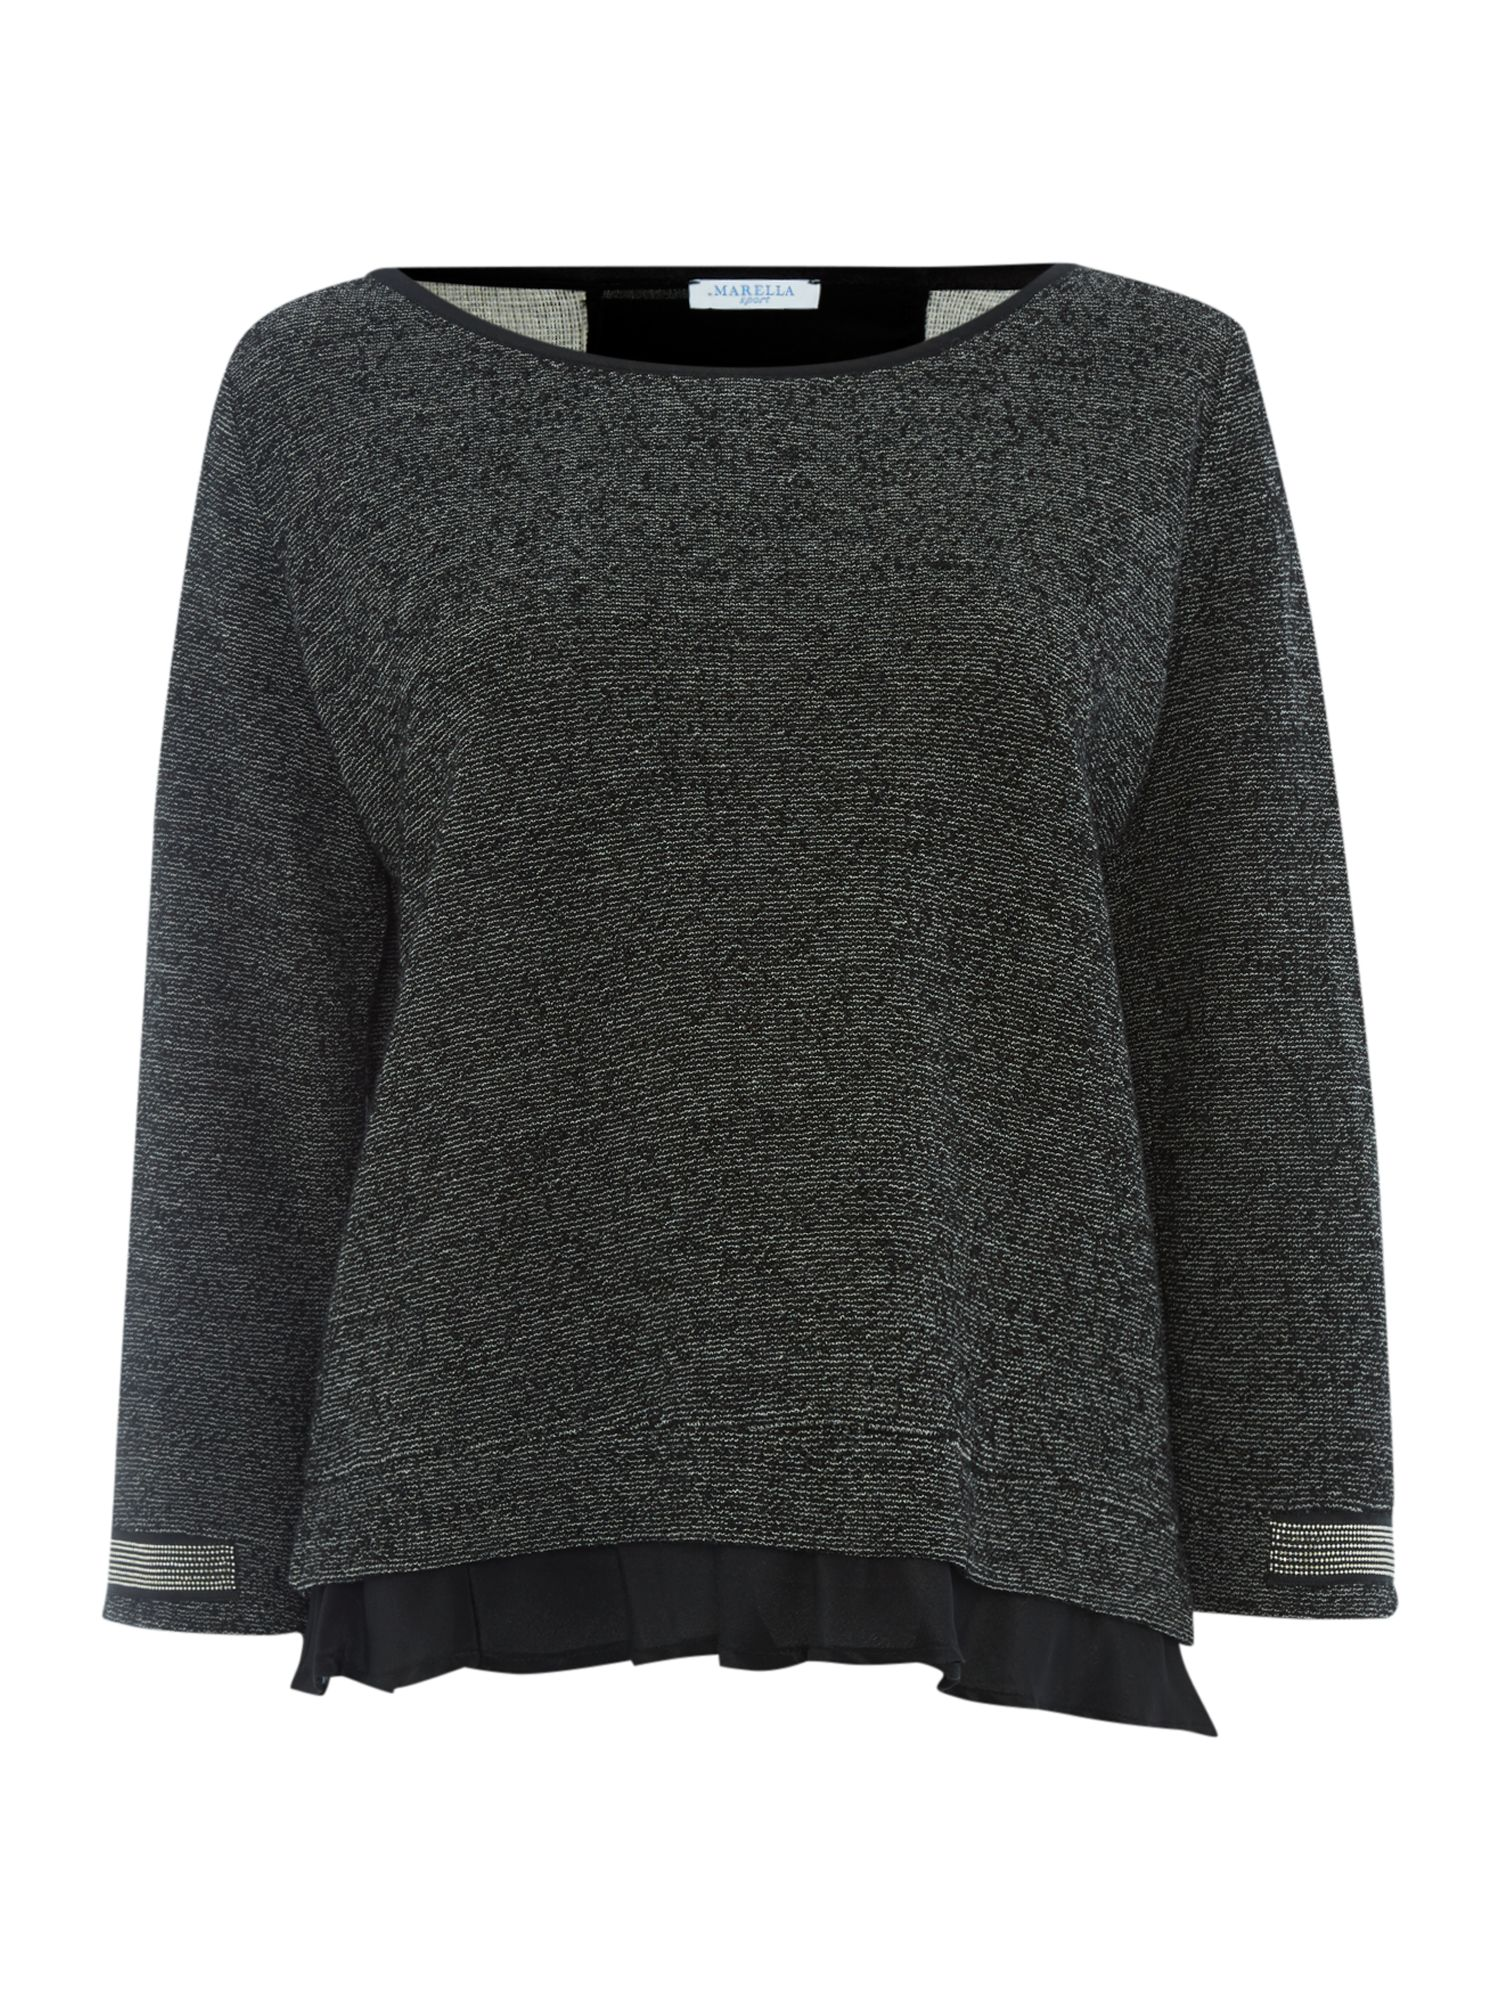 Gerla embellished sweat top